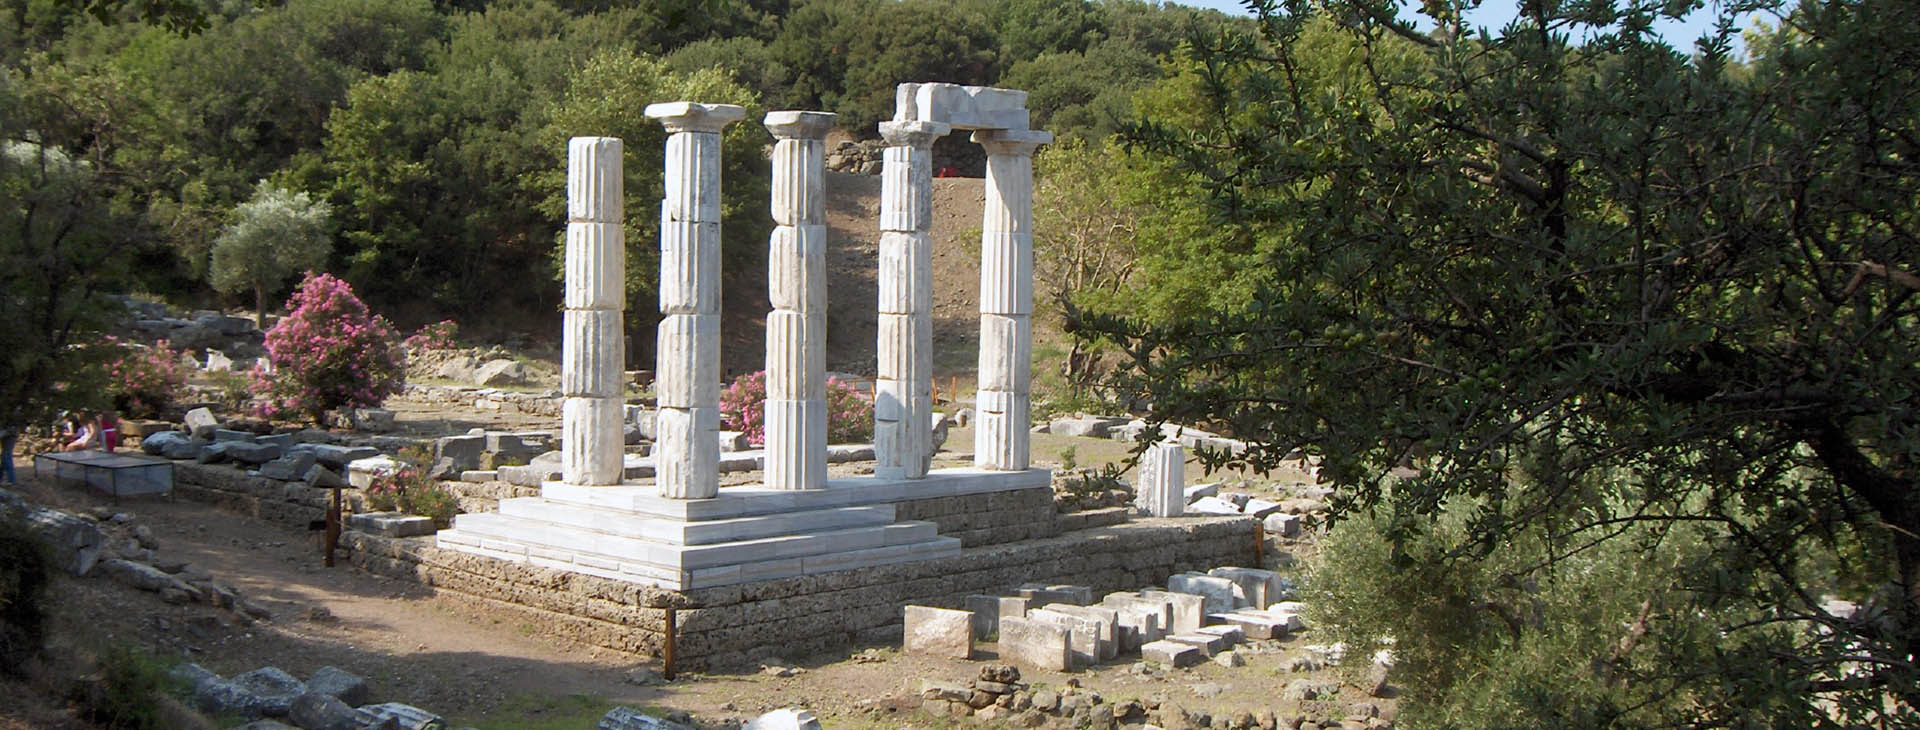 Sanctuary of the Great Gods, Palaiopolis, Samothrace island